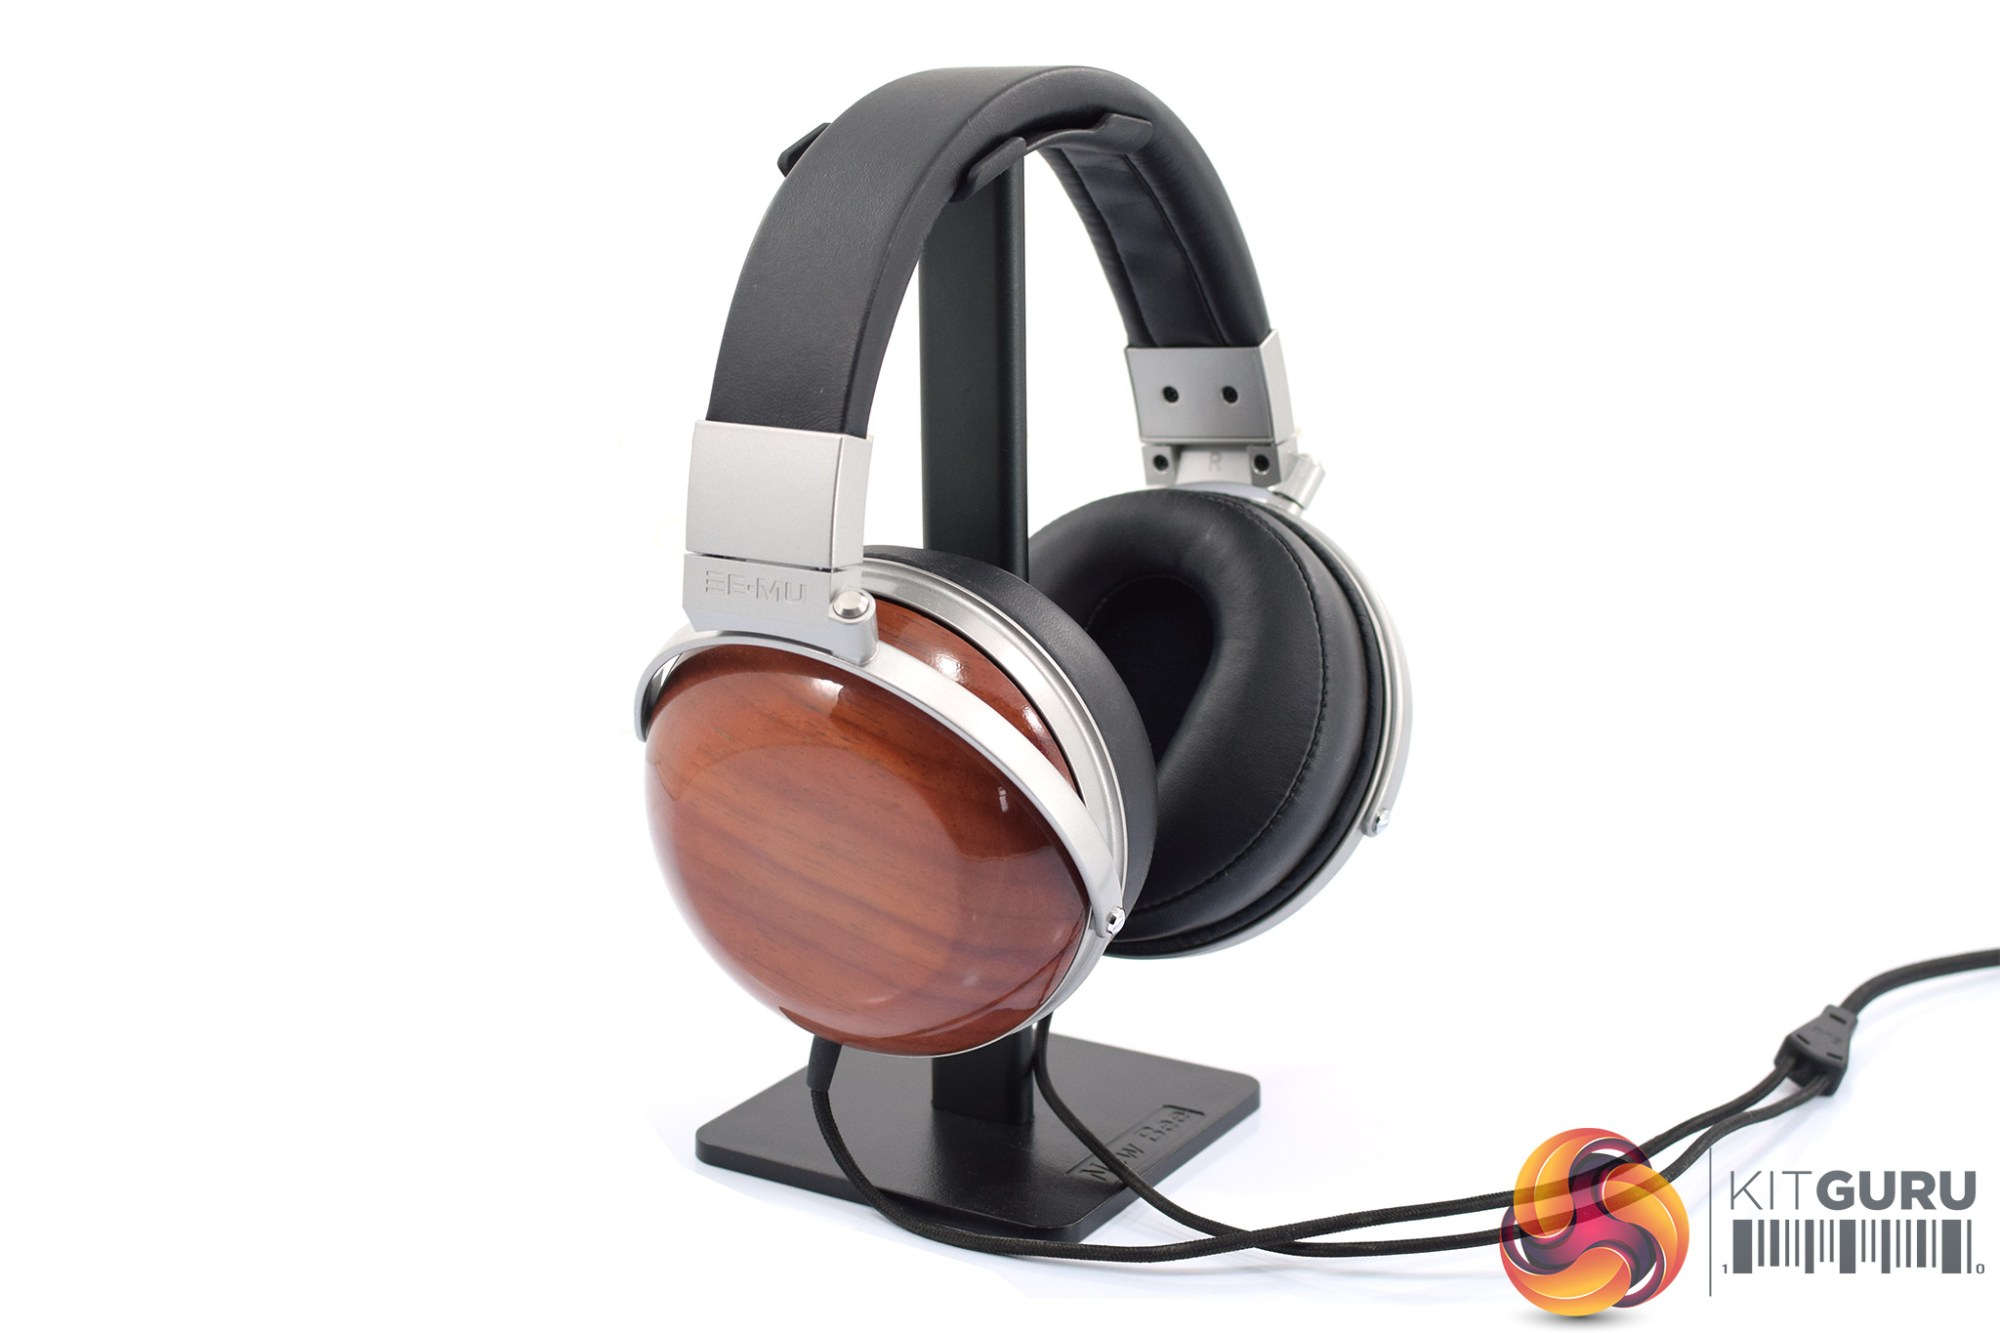 hight resolution of creative also sent us a pair of e mu teak headphones to test with the sxfi amp to be clear this isn t a review of the headphones we re talking about the